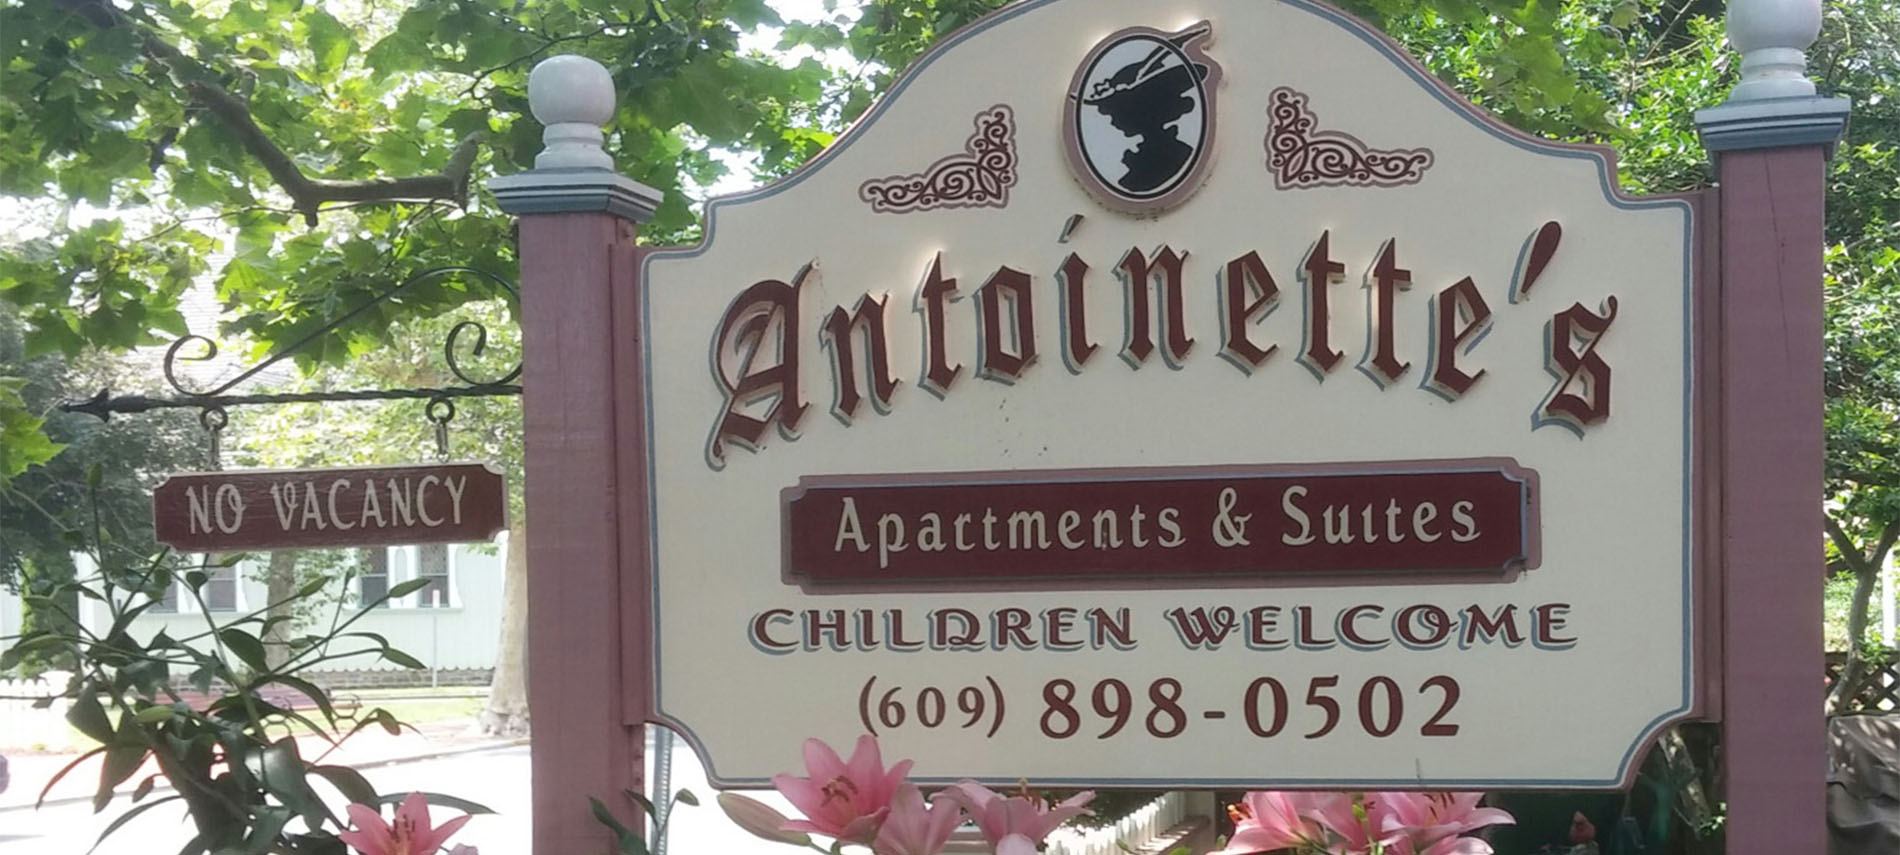 Wooden sign in cream and mauve for Antoinette's Apartments and Suites.